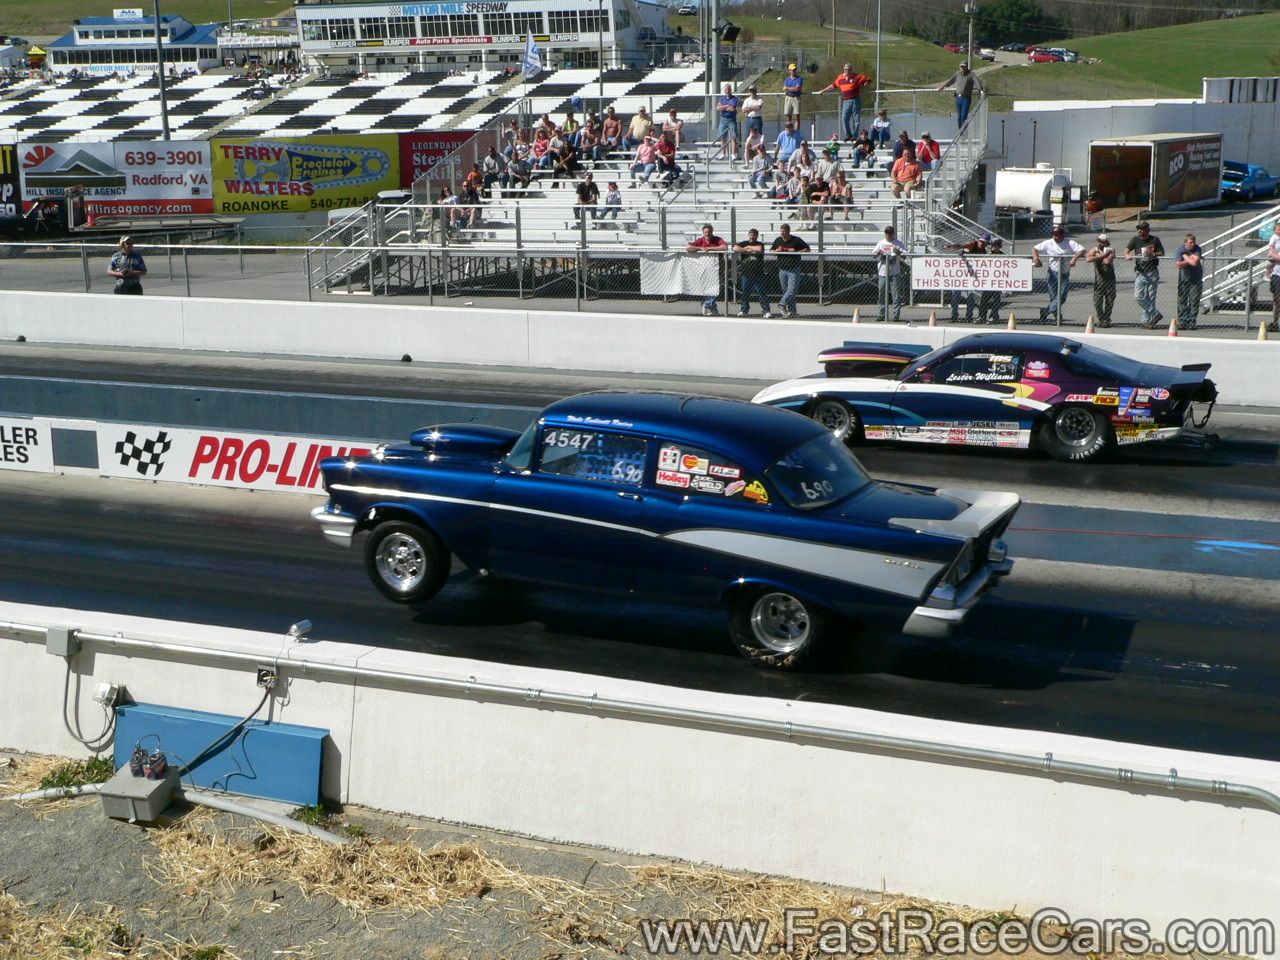 55 Chevy Drag Race Car http://www.fastracecars.com/categories/Drag%20Race%20Cars/55%20-%2057%20Chevrolets/large/shoebox-5.html